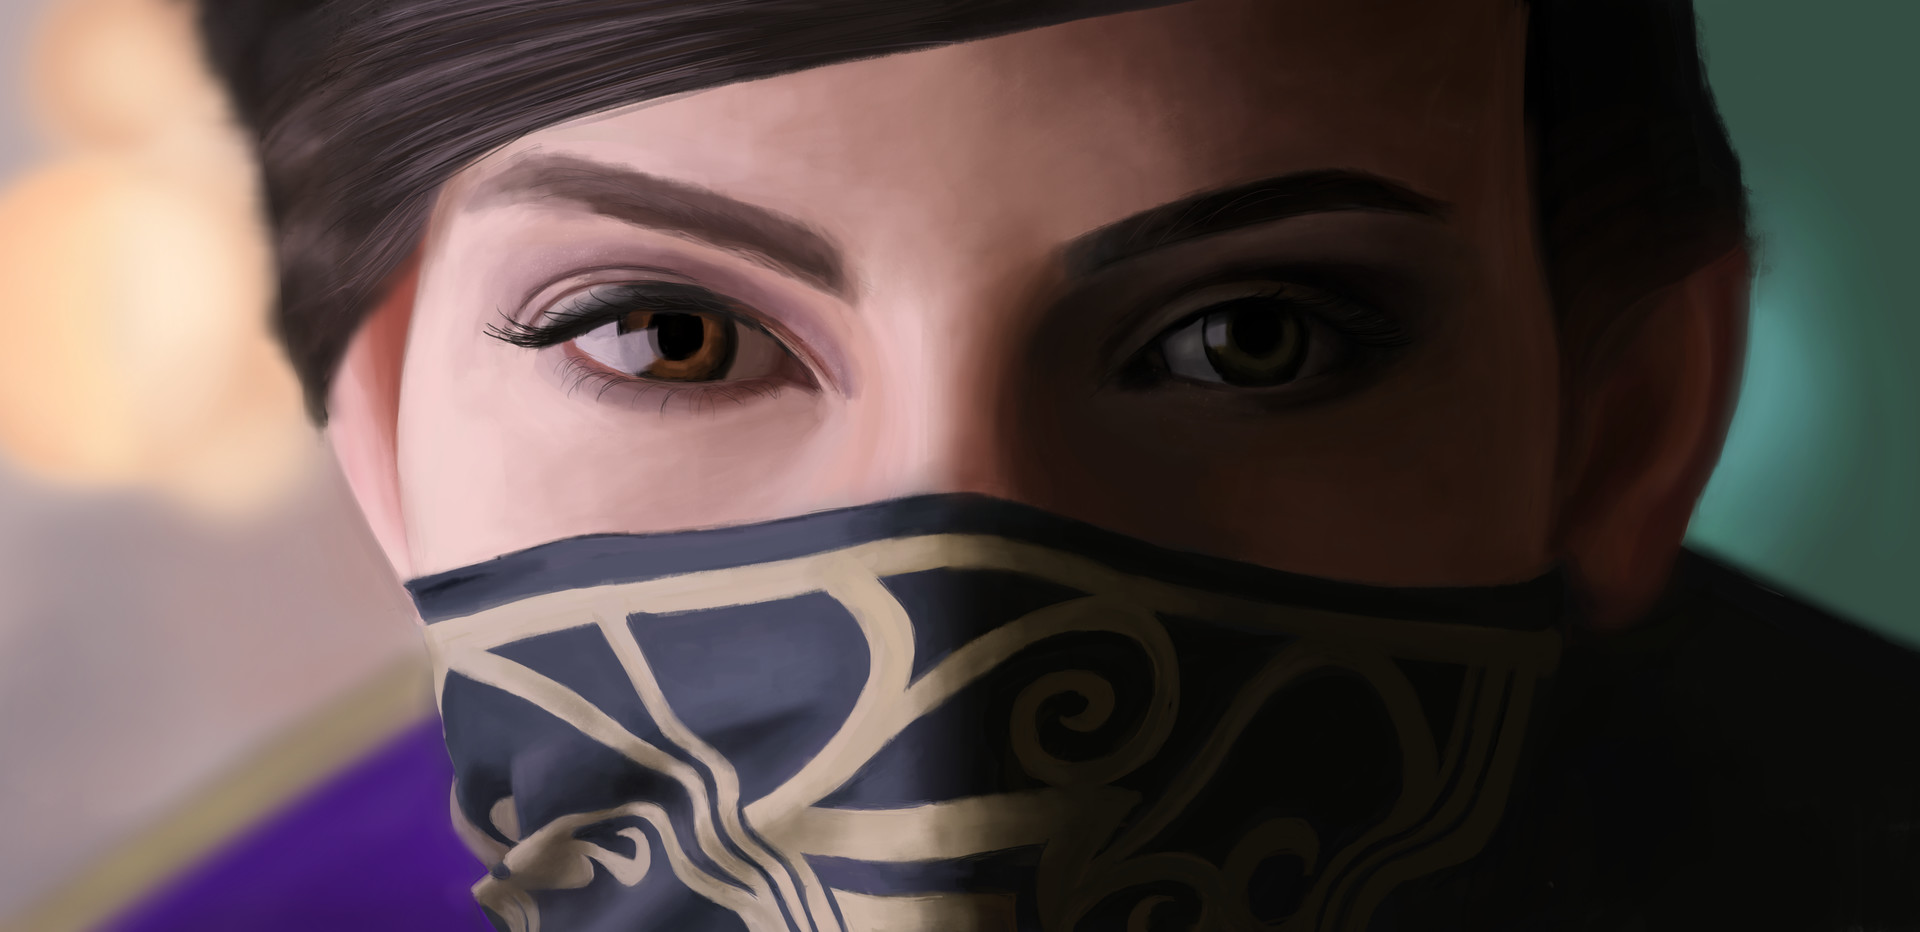 Emily Kaldwin Dishonored 2 Hd Games 4k Wallpapers Images